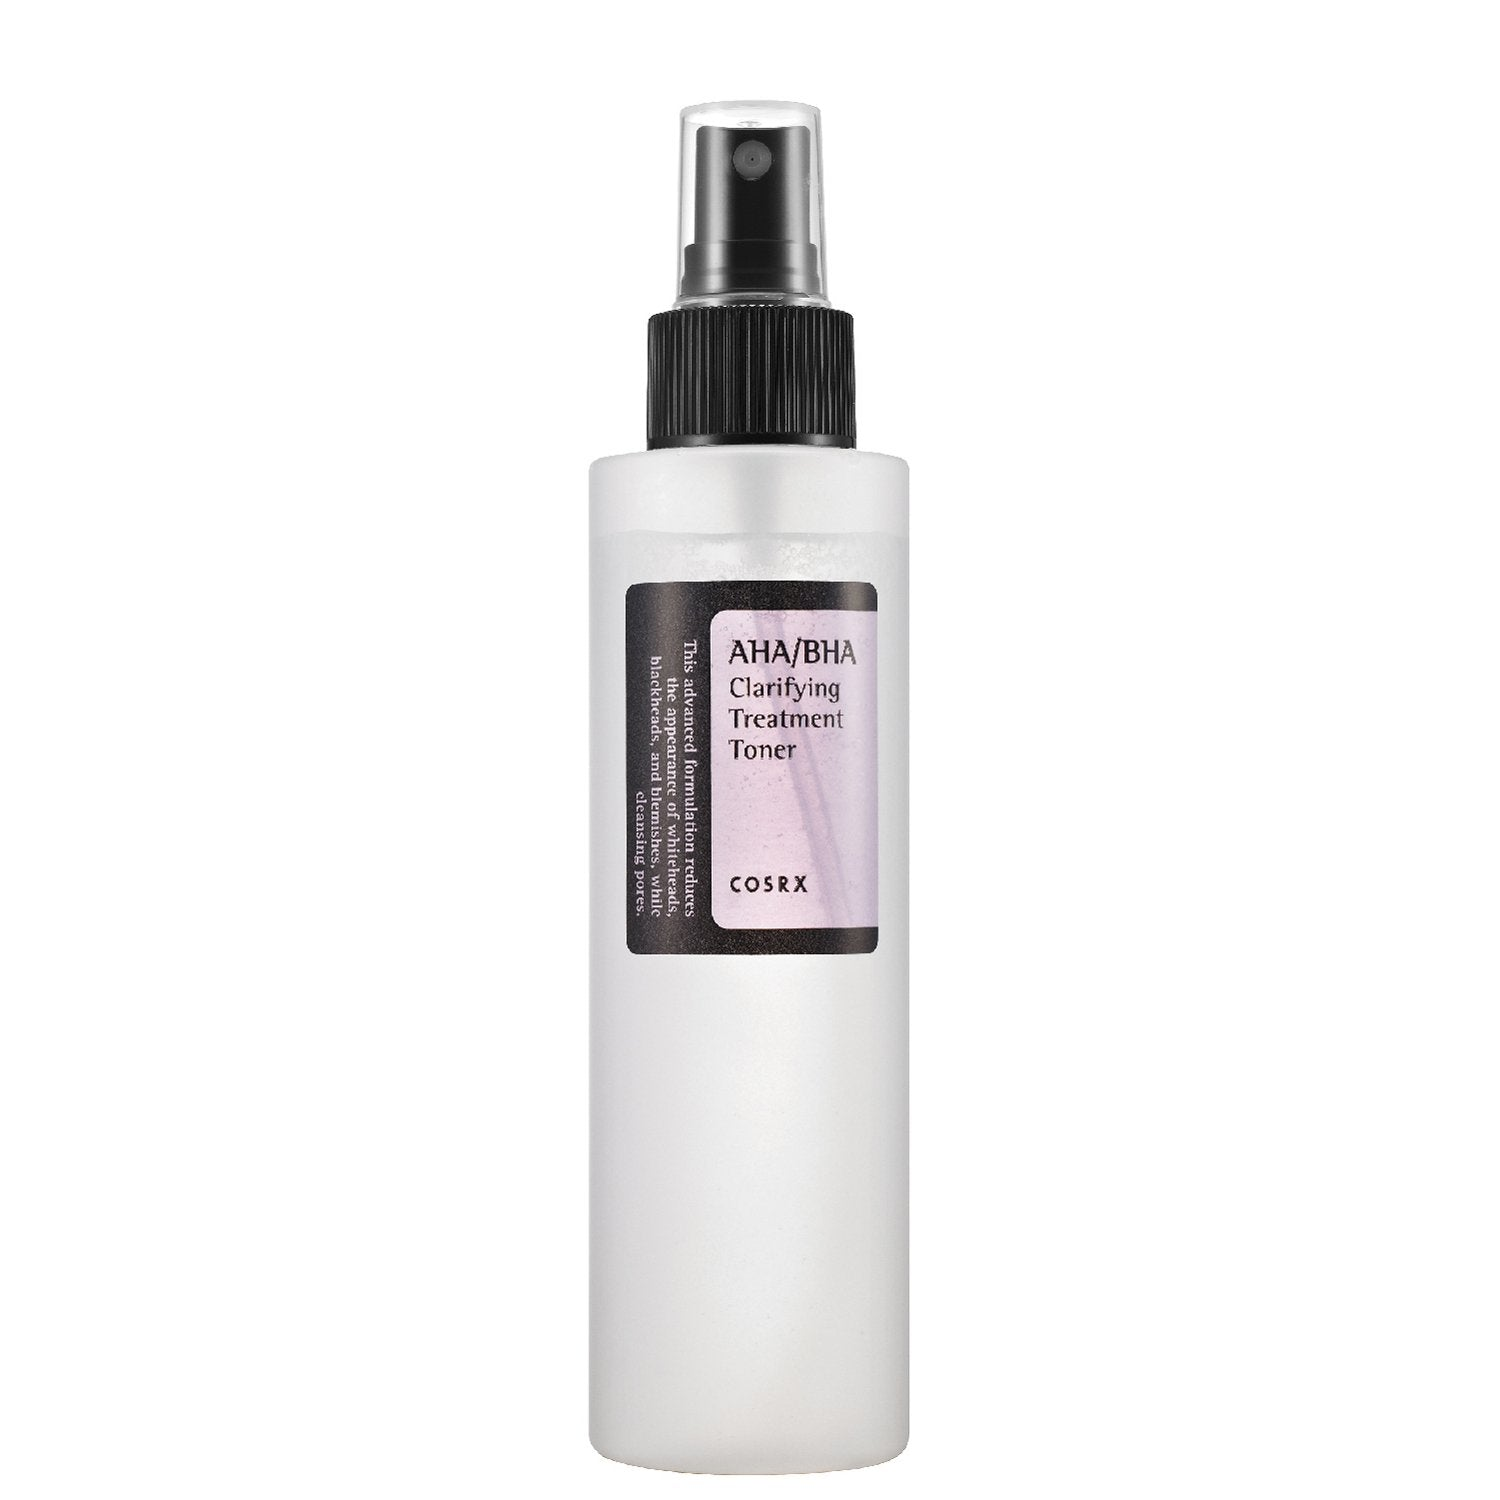 COSRX AHA/BHA Clarifying Treatment Toner (150ml) Toner - Skinspace